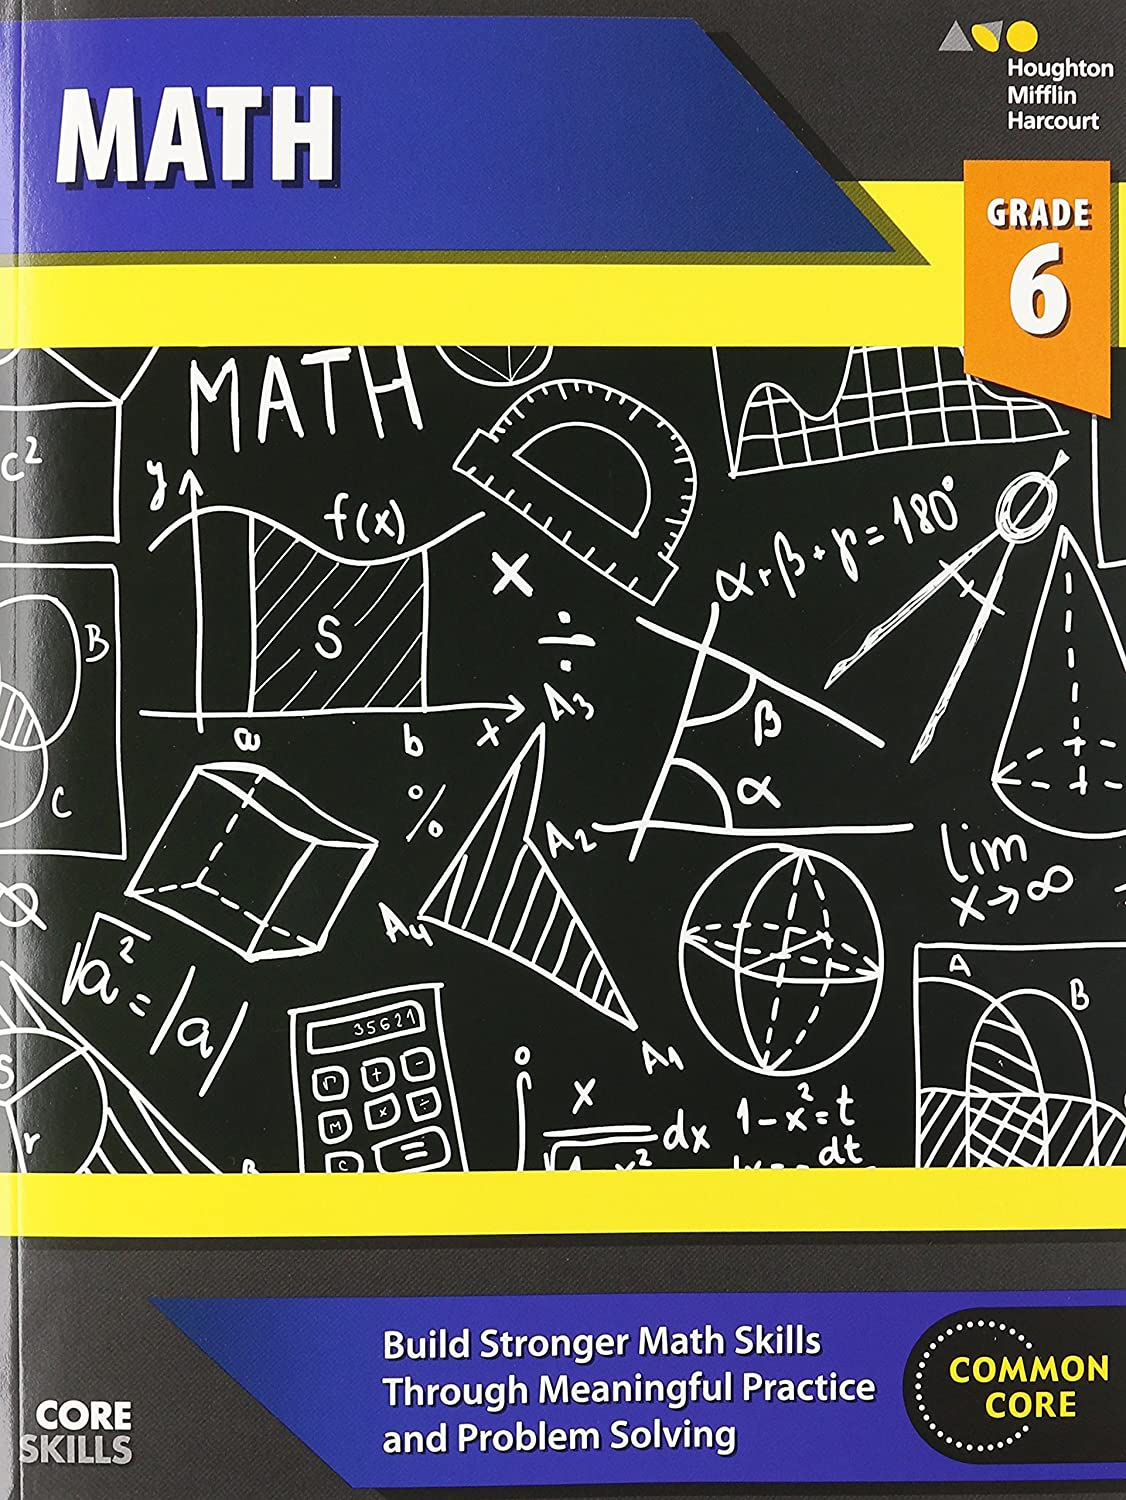 Worksheets Houghton Mifflin Math Worksheets steck vaughn core skills mathematics workbook grade 6 9780544268241 amazon com books